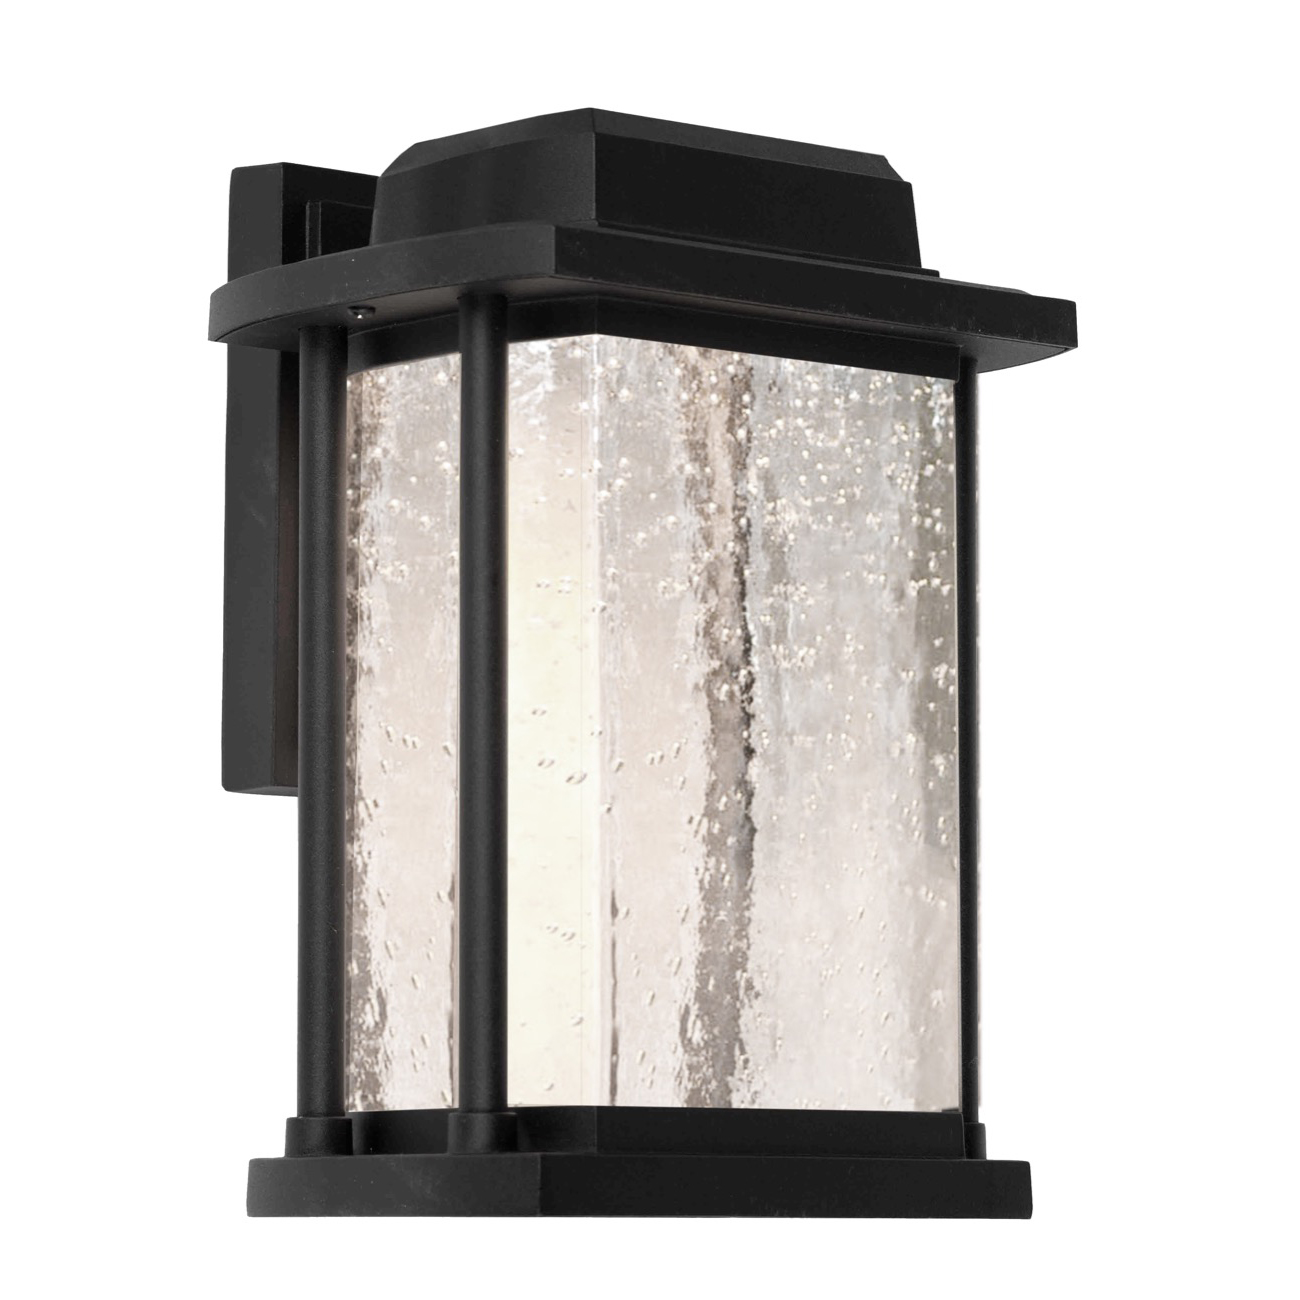 Artcraft Lighting AC9121BK Addison Outdoor Wall Bracket in Black